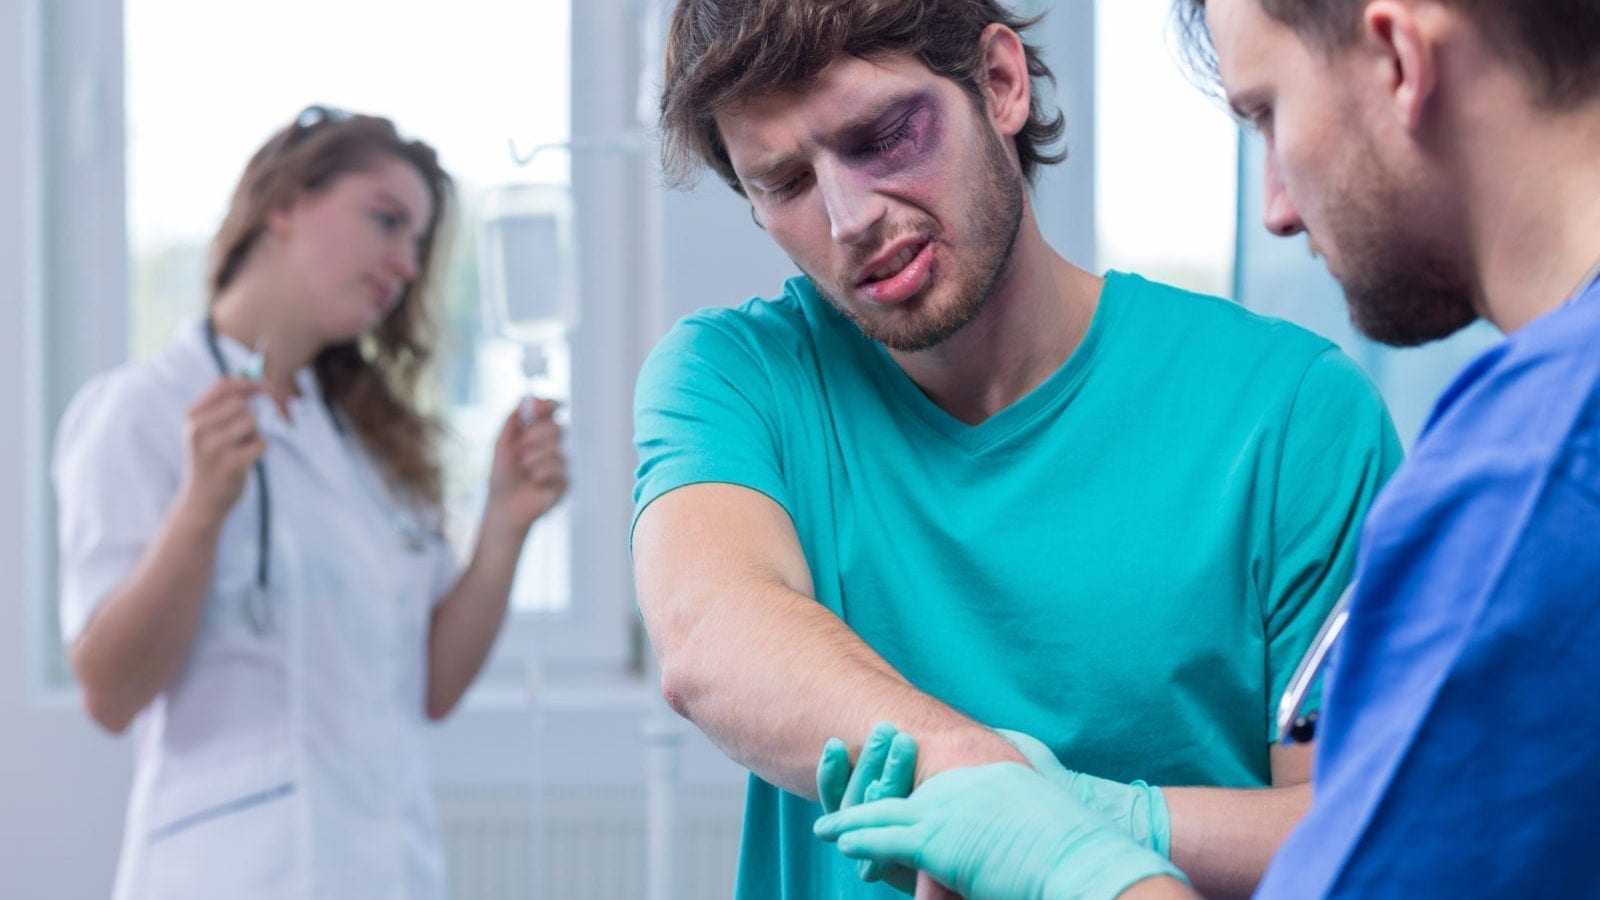 Injured Man Being Examined By A Male Nurse Stock Photo